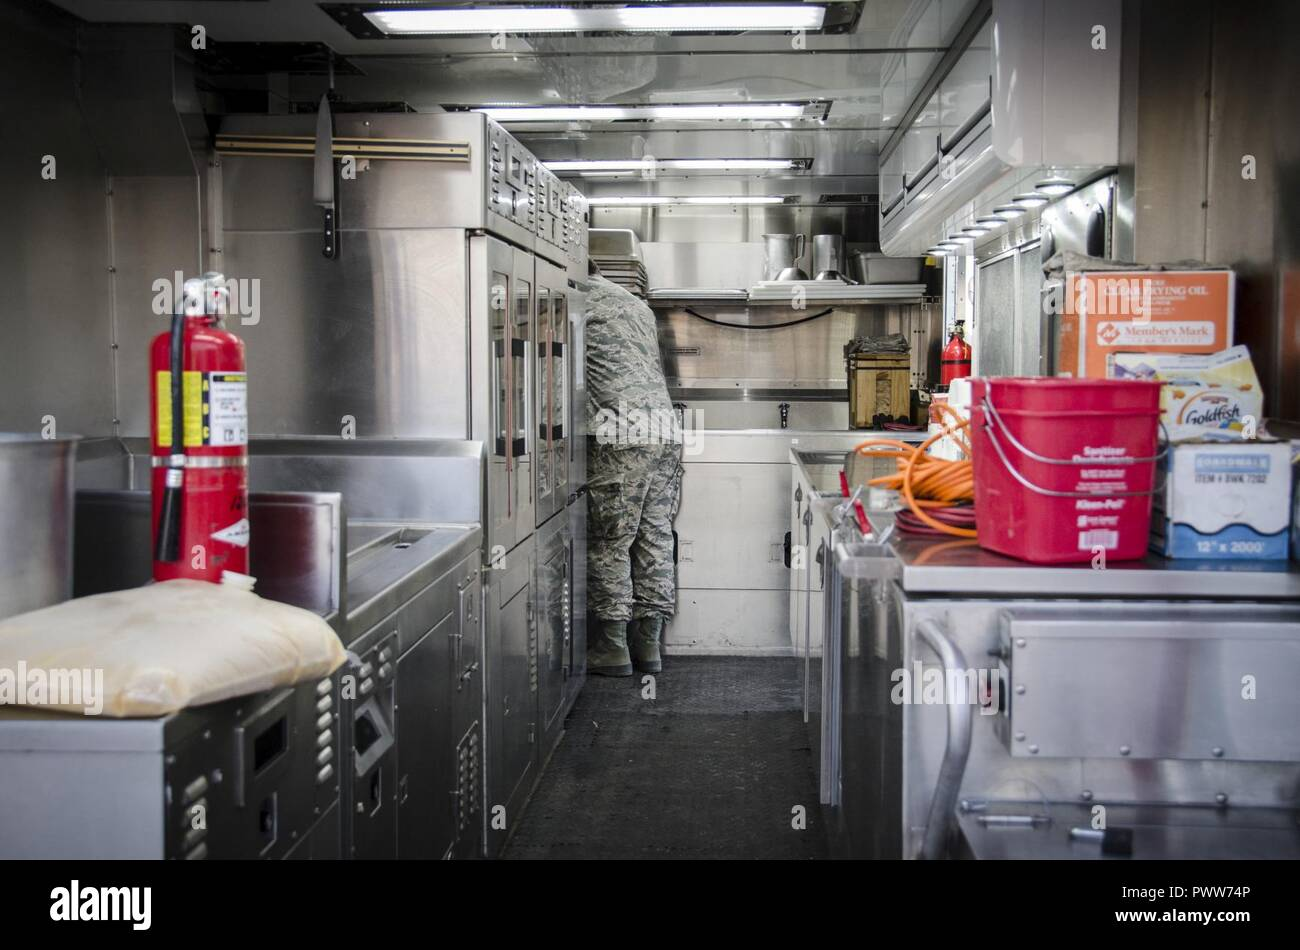 traveling kitchen cabinet painters an airman prepares breakfast inside of the disaster relief mobile trailer june 22 2017 at crow innovative readiness training construction site drmkt is a that allows services